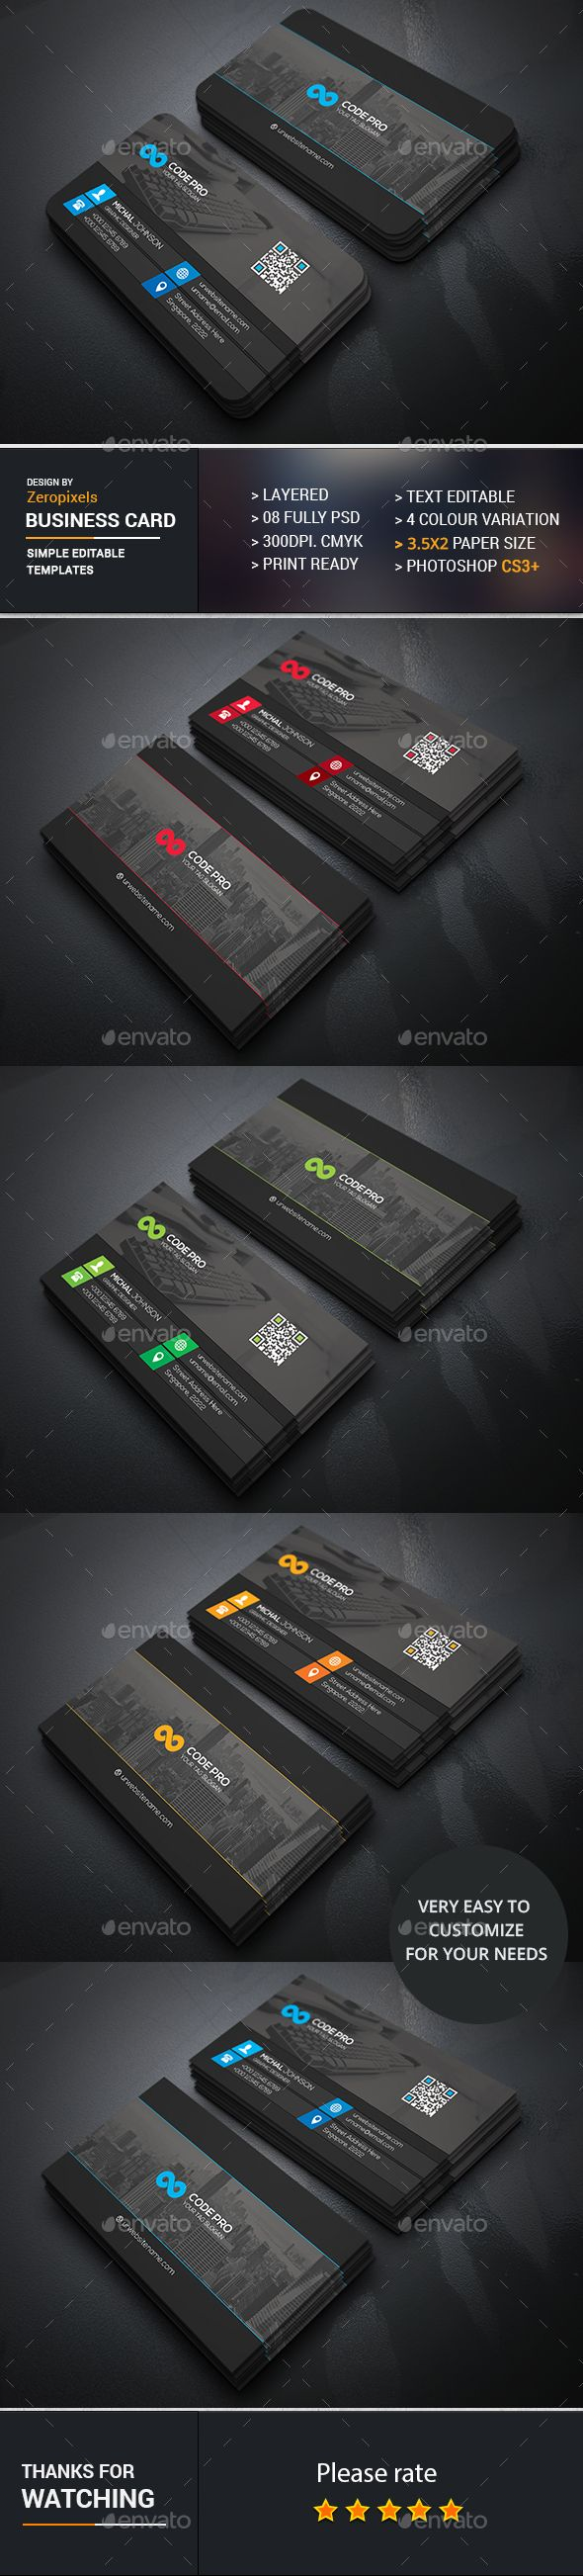 Black corporate business card design template business cards black corporate business card design template business cards template psd download here https reheart Choice Image